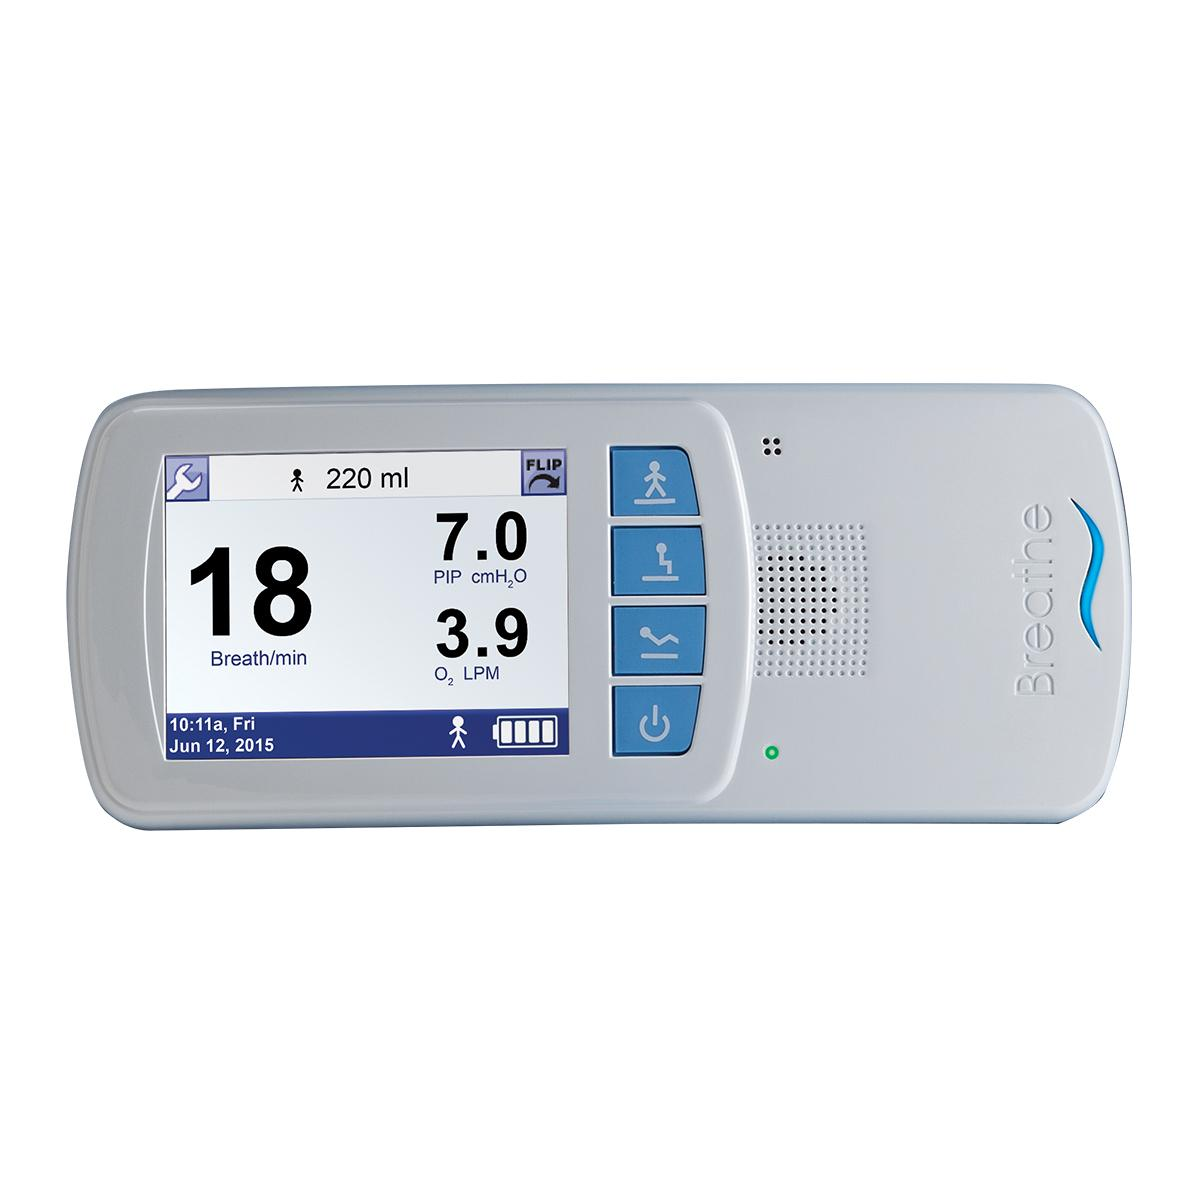 Hillrom's Life2000 Ventilator shows oxygen flow rate, peak inspiratory pressure, and breath rate.